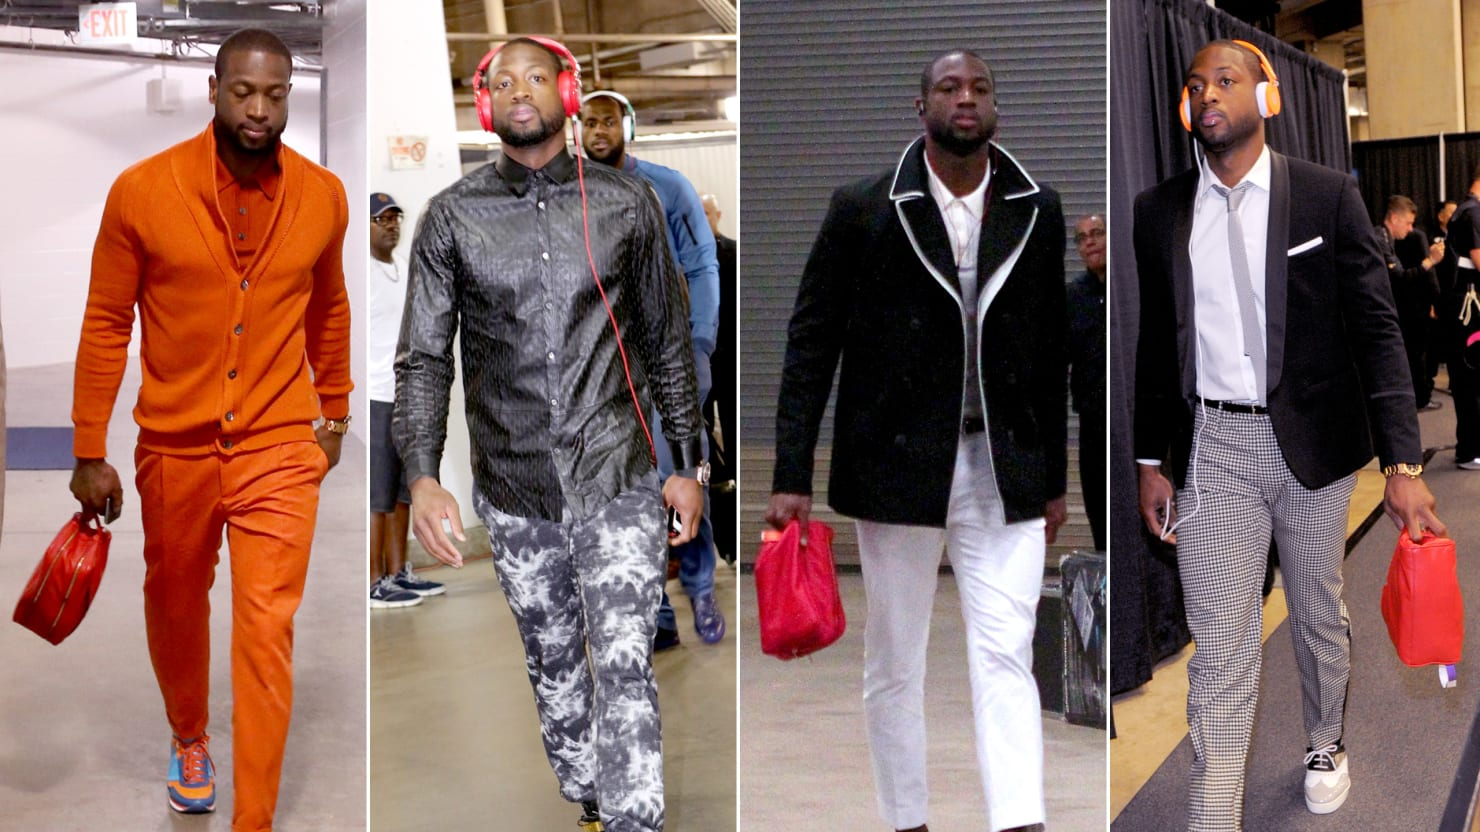 557202eaa18 Take Westbrook of the poll breh. Wade has been doing this way longer than  Westbrook. He arguably paved the way for the new wave of NBA fashion.